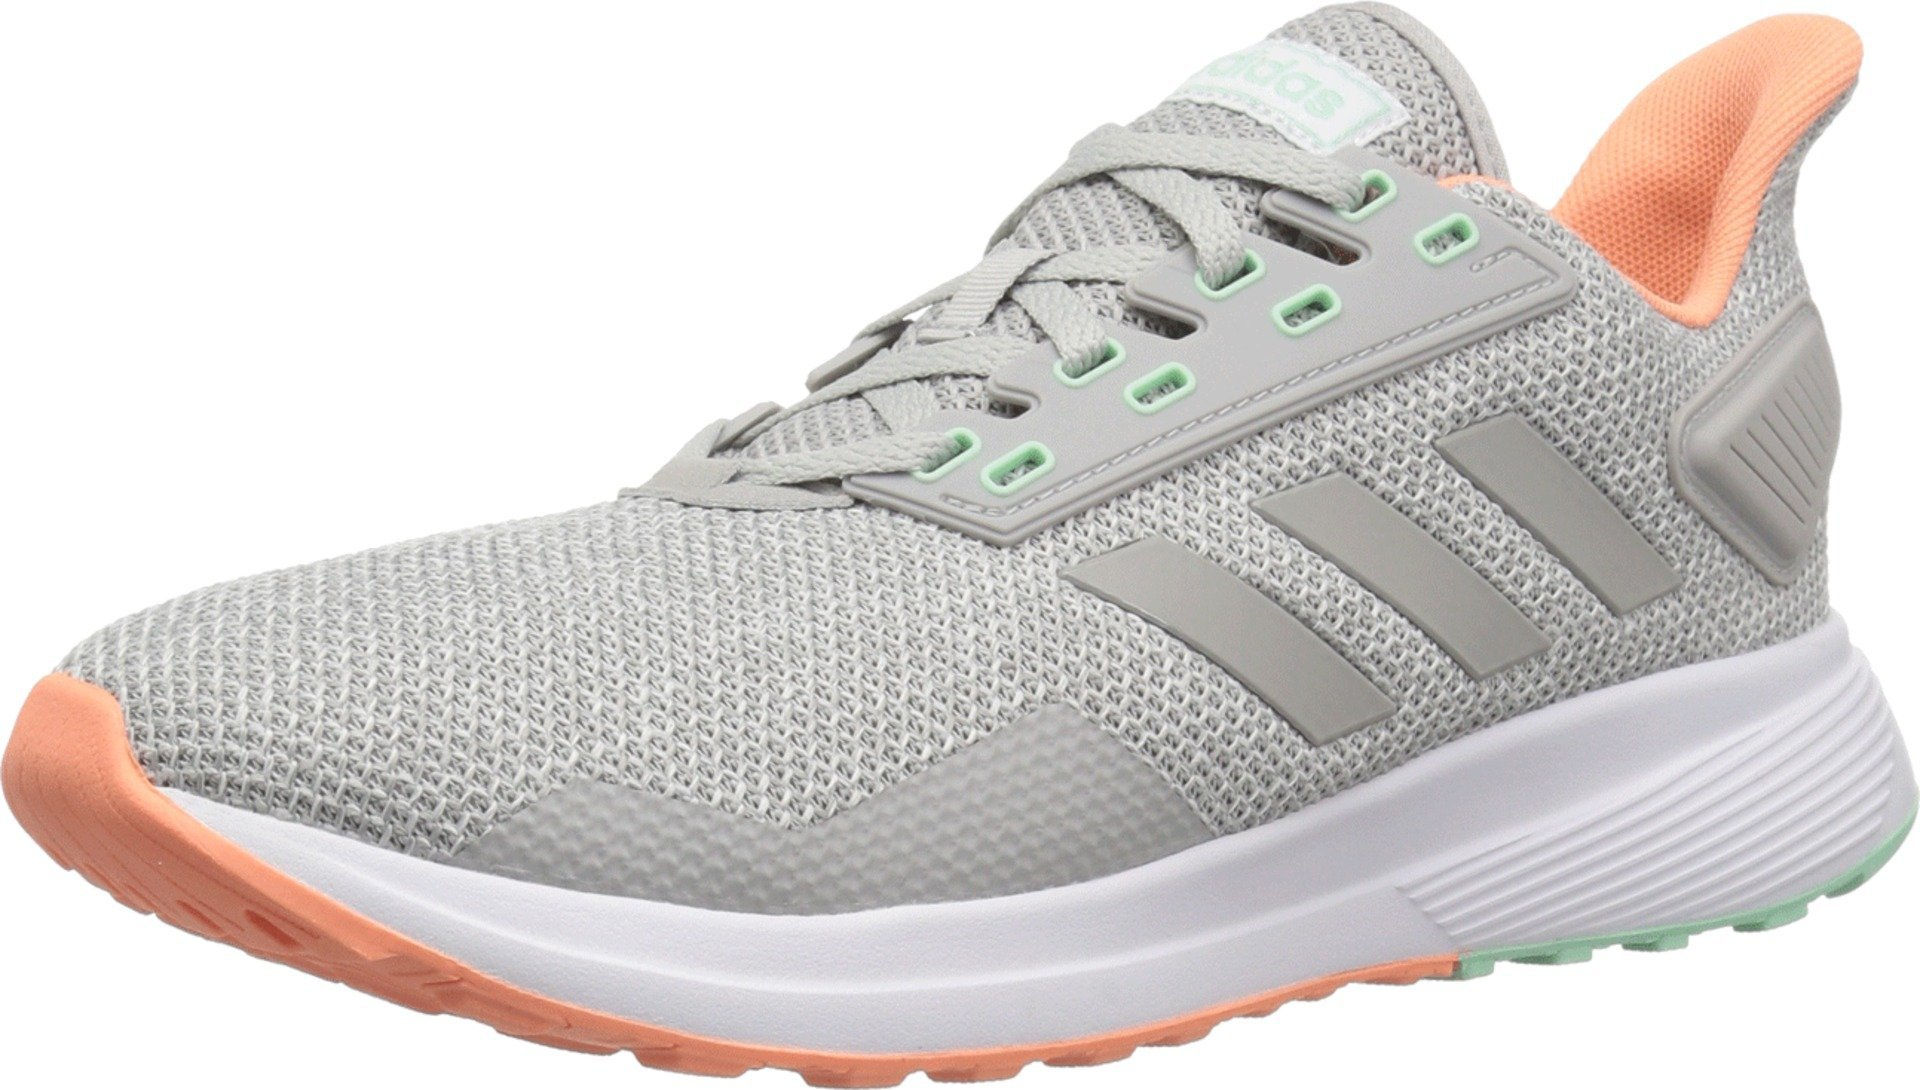 adidas Women's Duramo 9 Running Shoe Grey/Chalk Coral, 9 M US by adidas